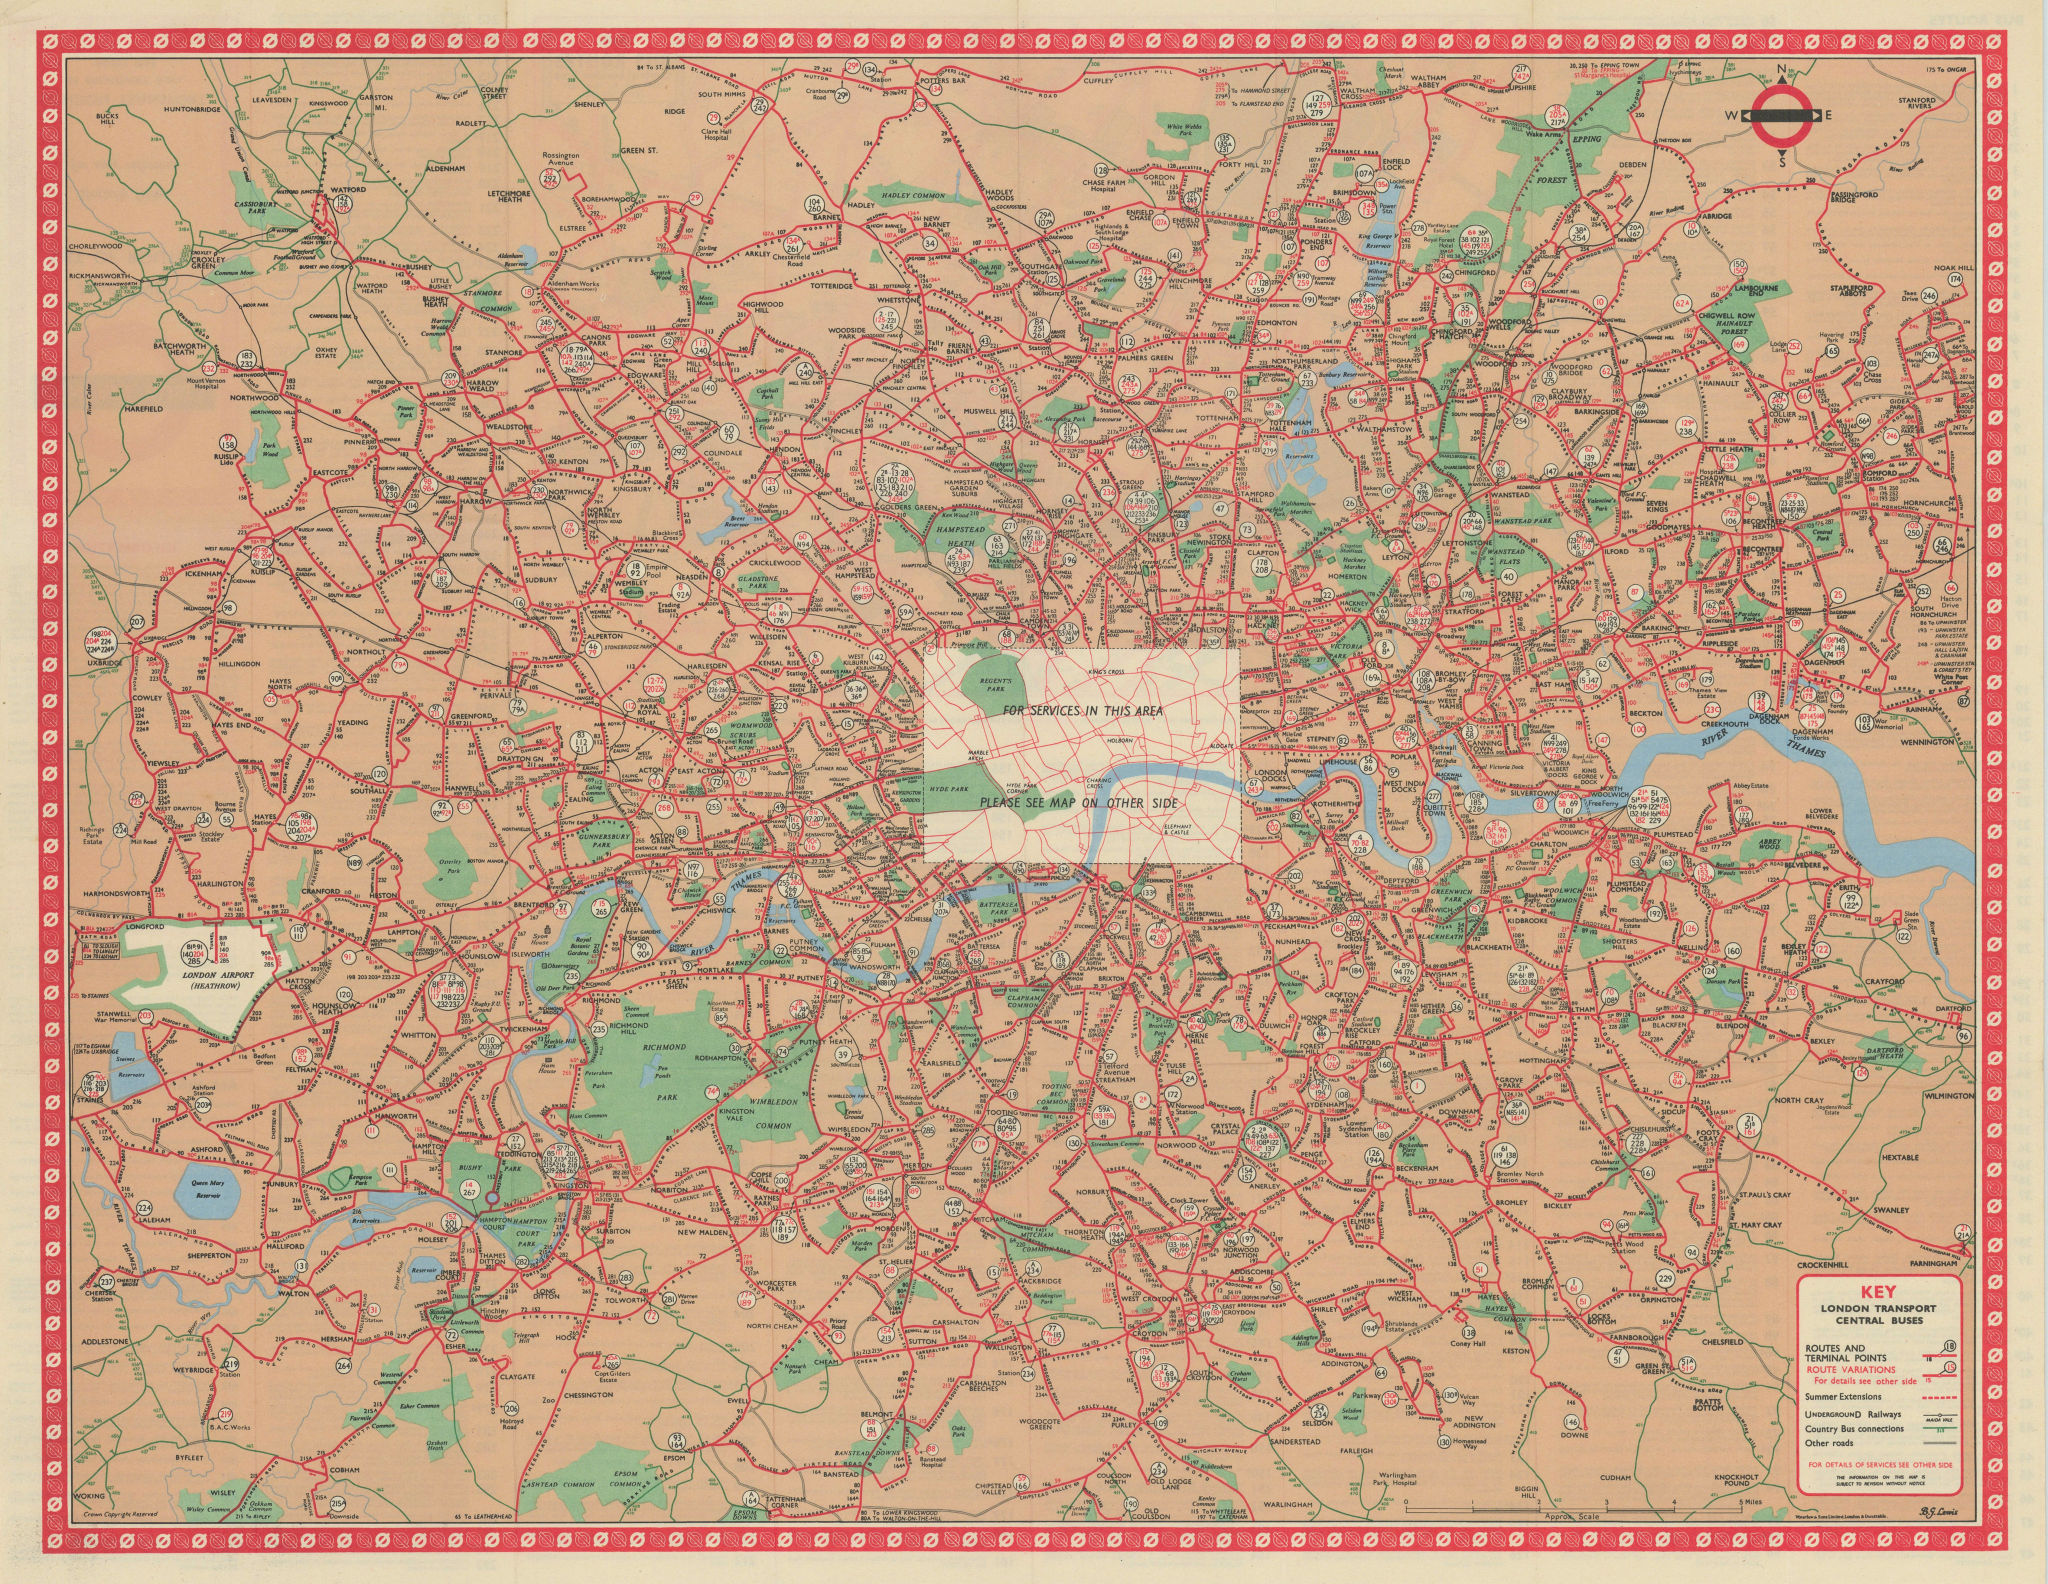 London Transport Central Buses map and list of routes. LEWIS #1R 1965 old